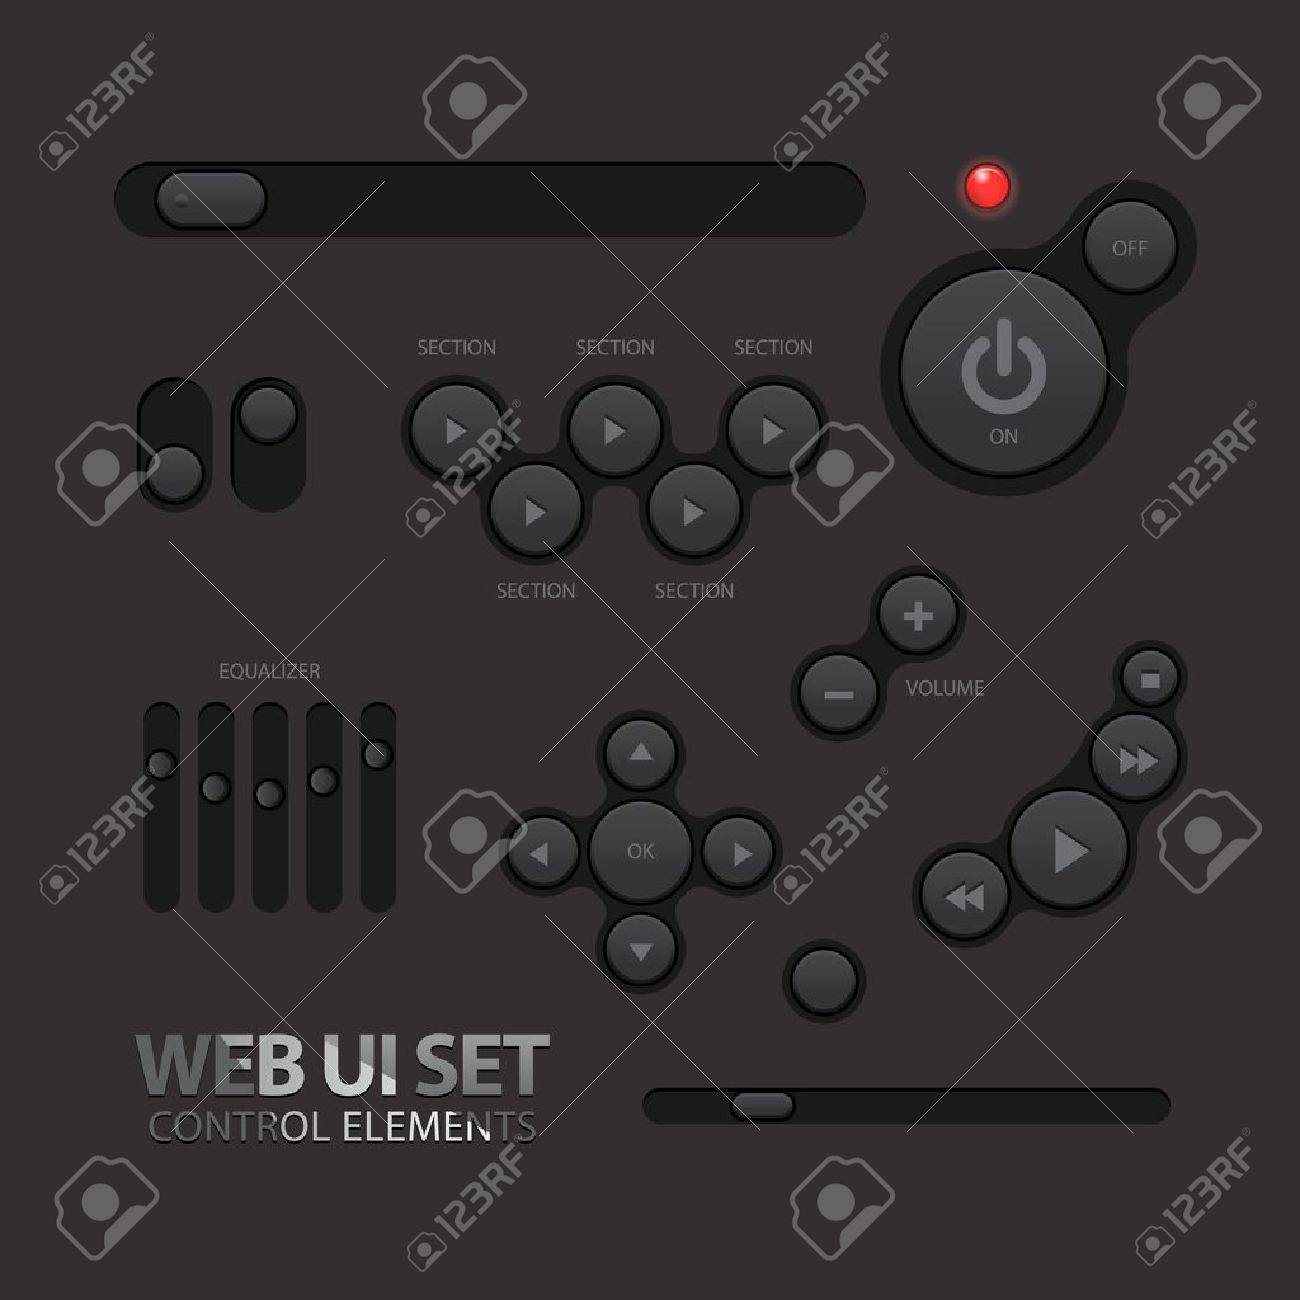 Black Web UI Elements  Buttons, Switches Stock Vector - 20233456